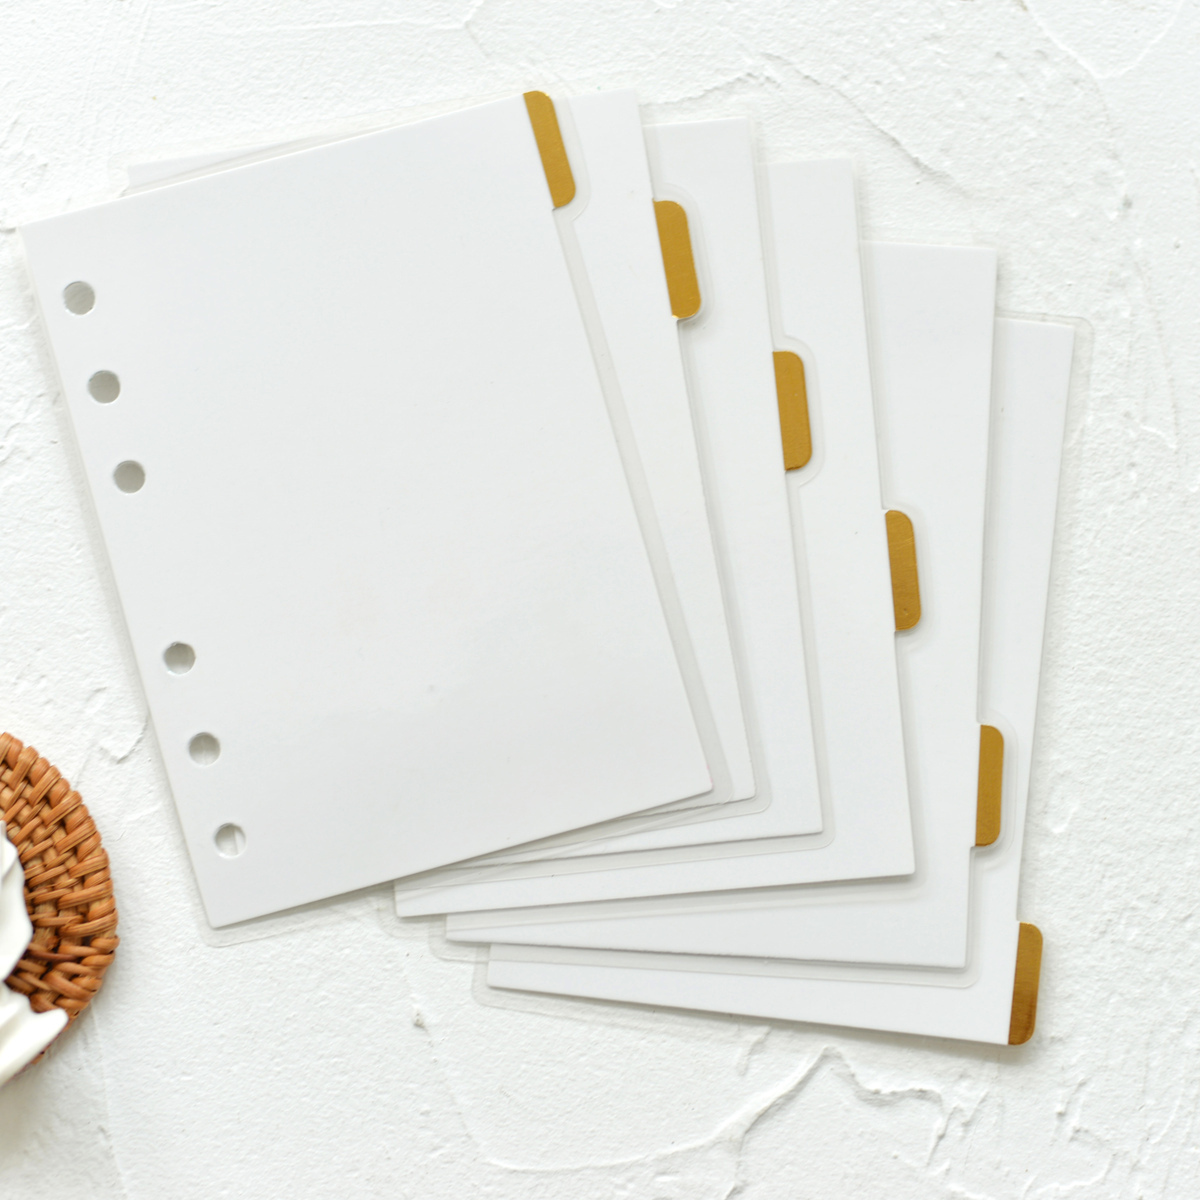 Fromthenon Foil Gold Index Pages Plastic Covered Dividers A5a6a7 Planner Refill Bookmarks for Lovedoki Notebook cute Stationery|Notebooks| |  - title=